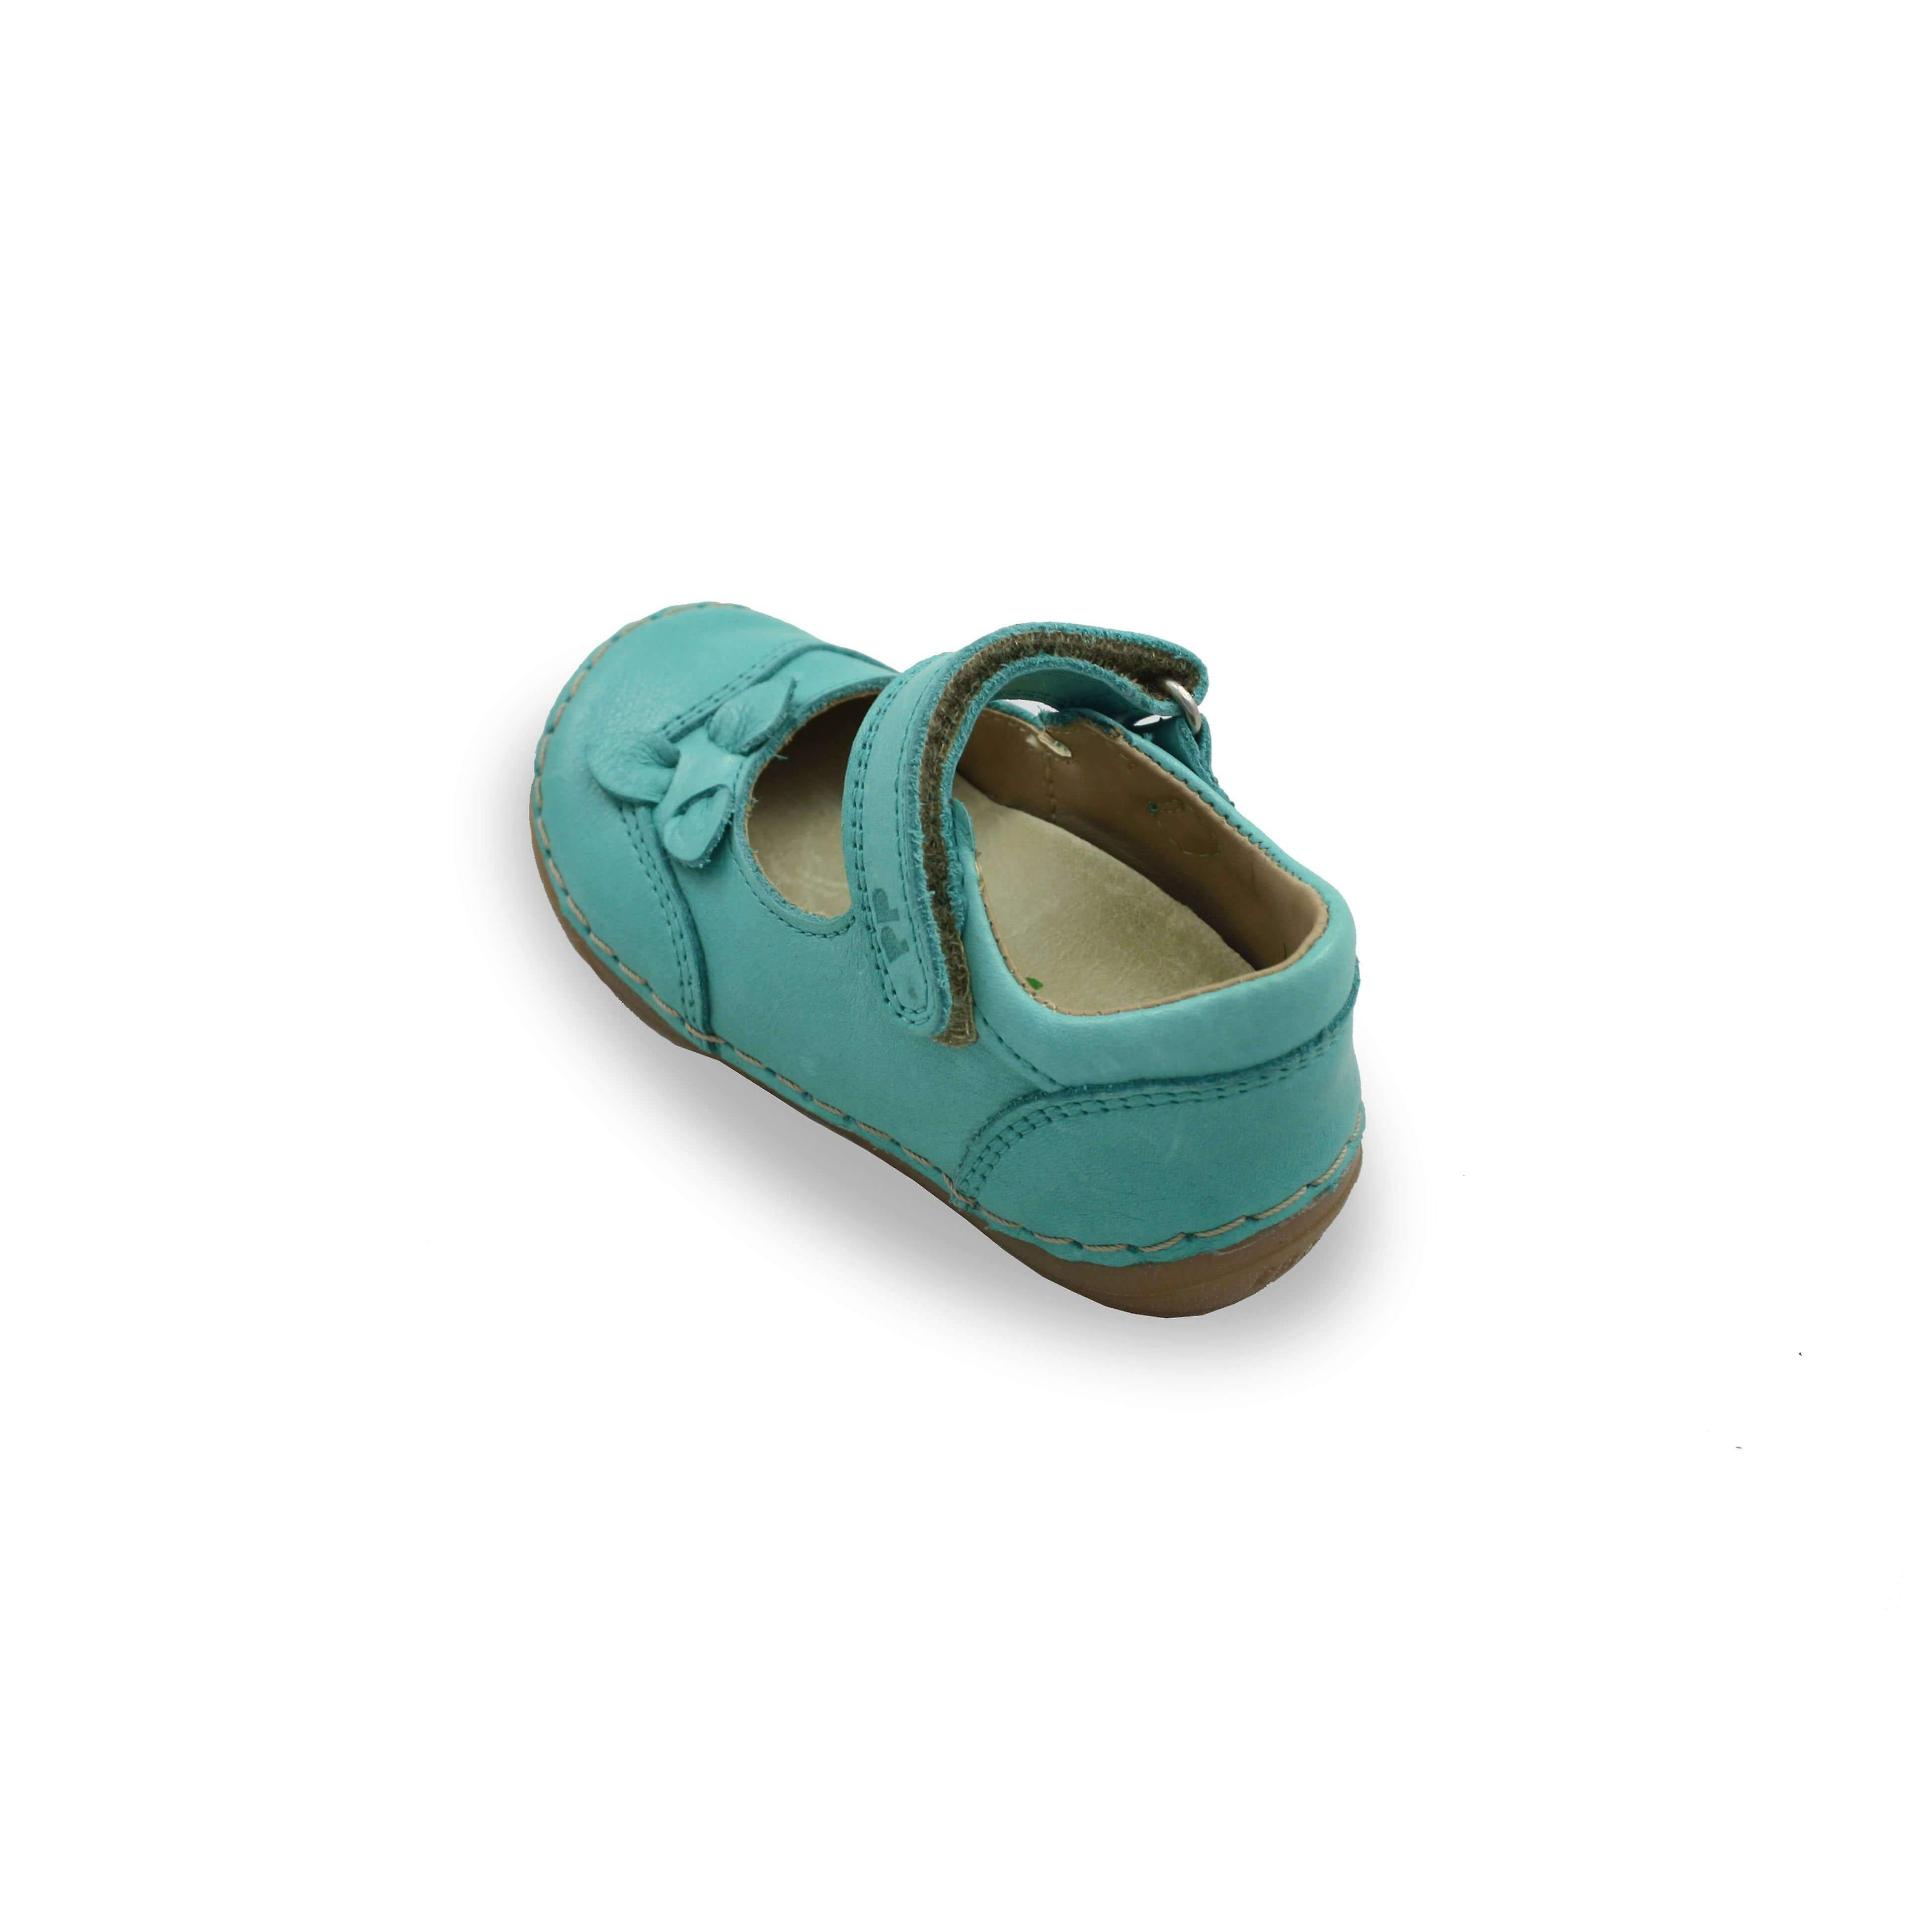 Froddo Green Mary-jane Shoes With Flower